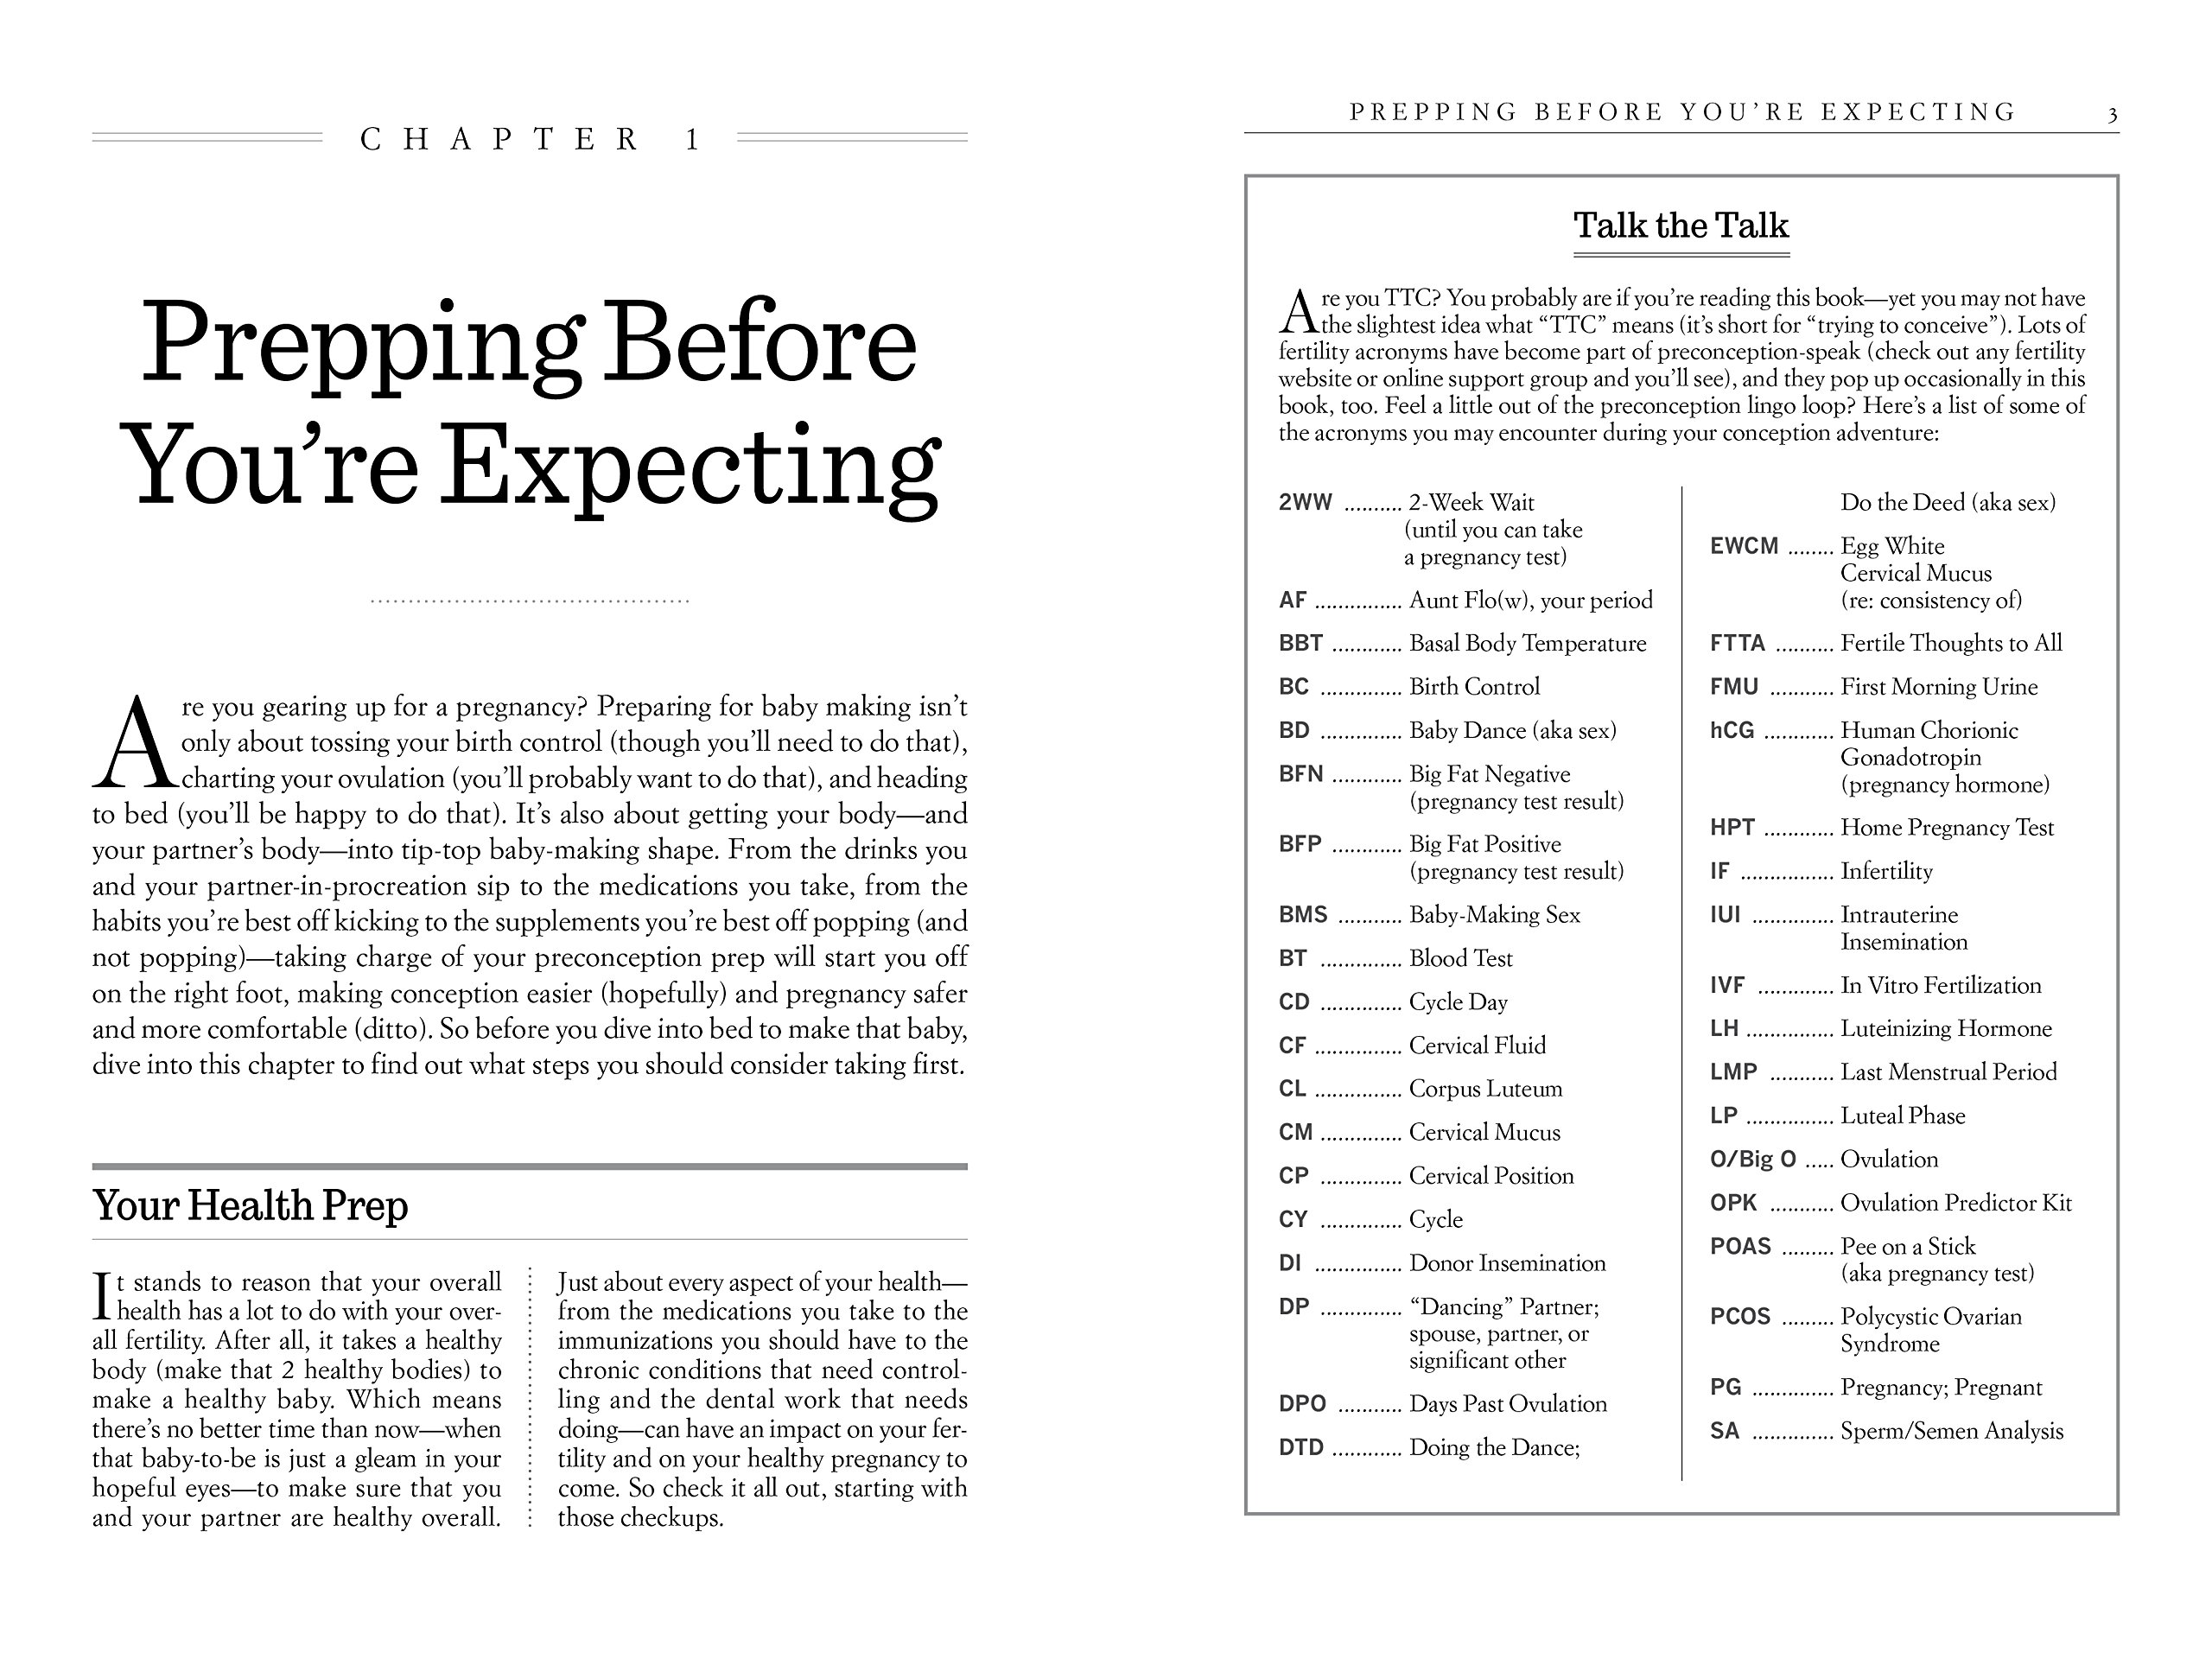 What to Expect Before You're Expecting: The Complete Guide to